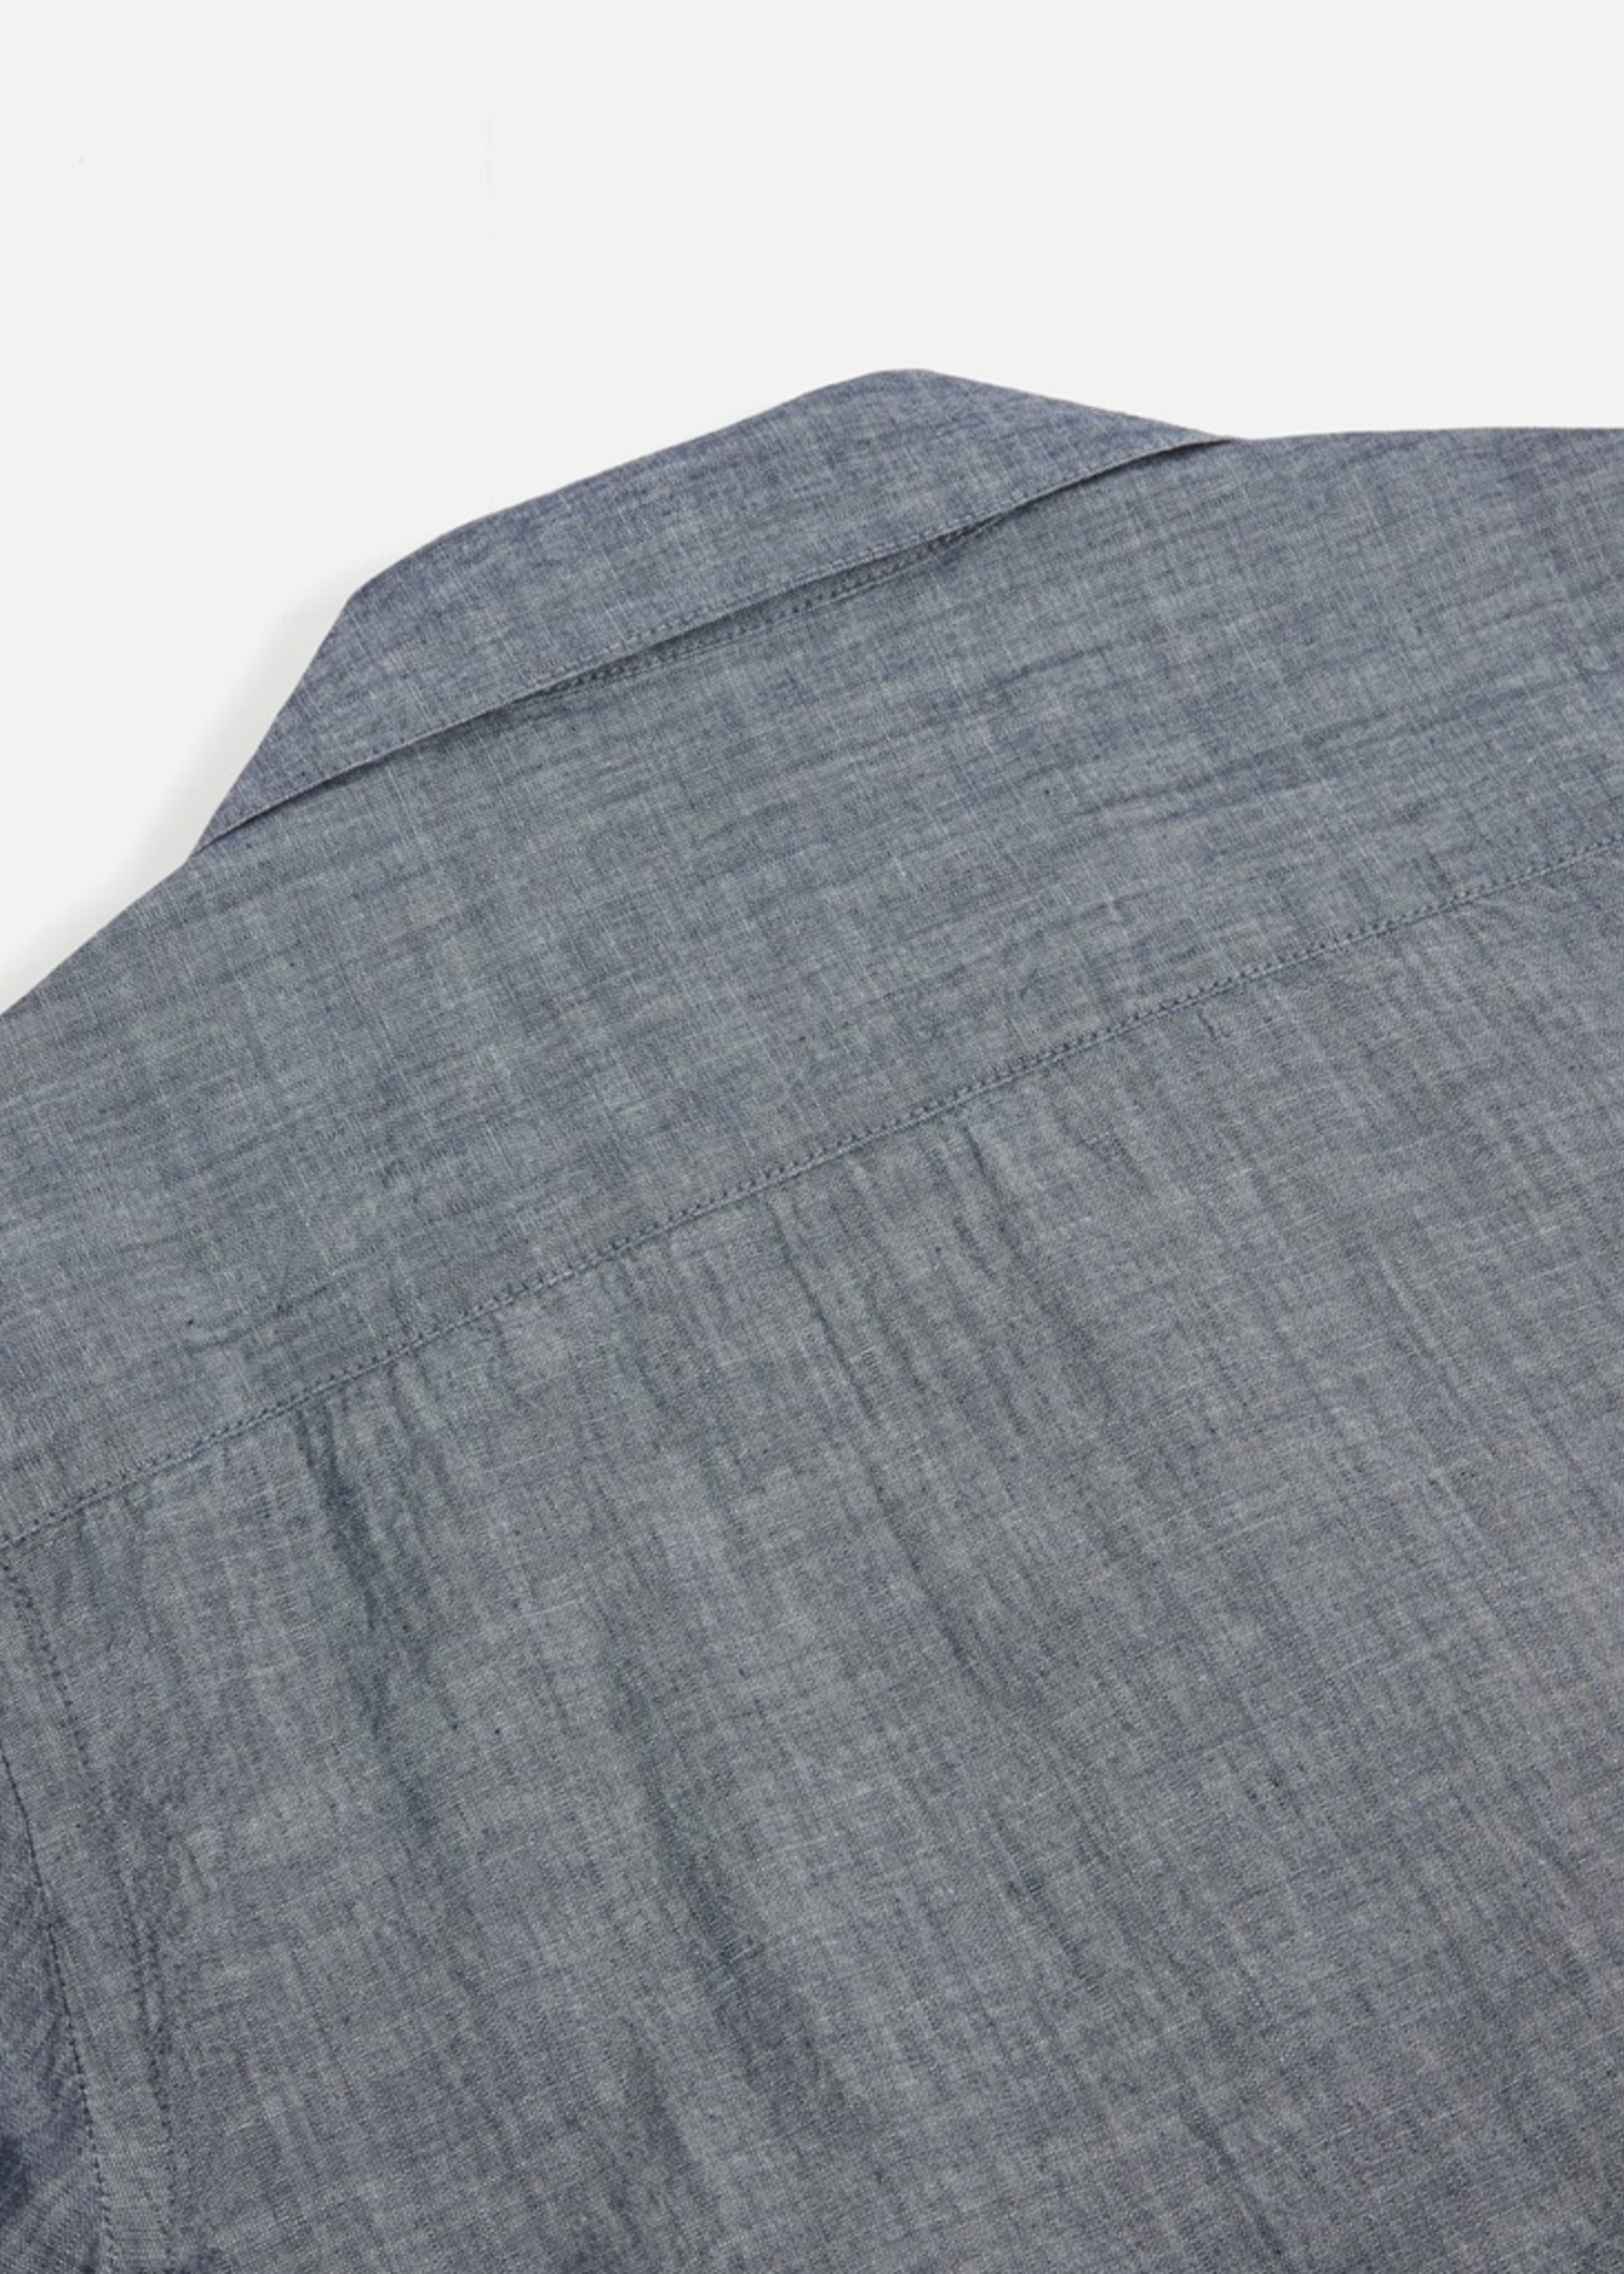 Universal Works Universal Works Open Collar Indigo Chambray Shirt